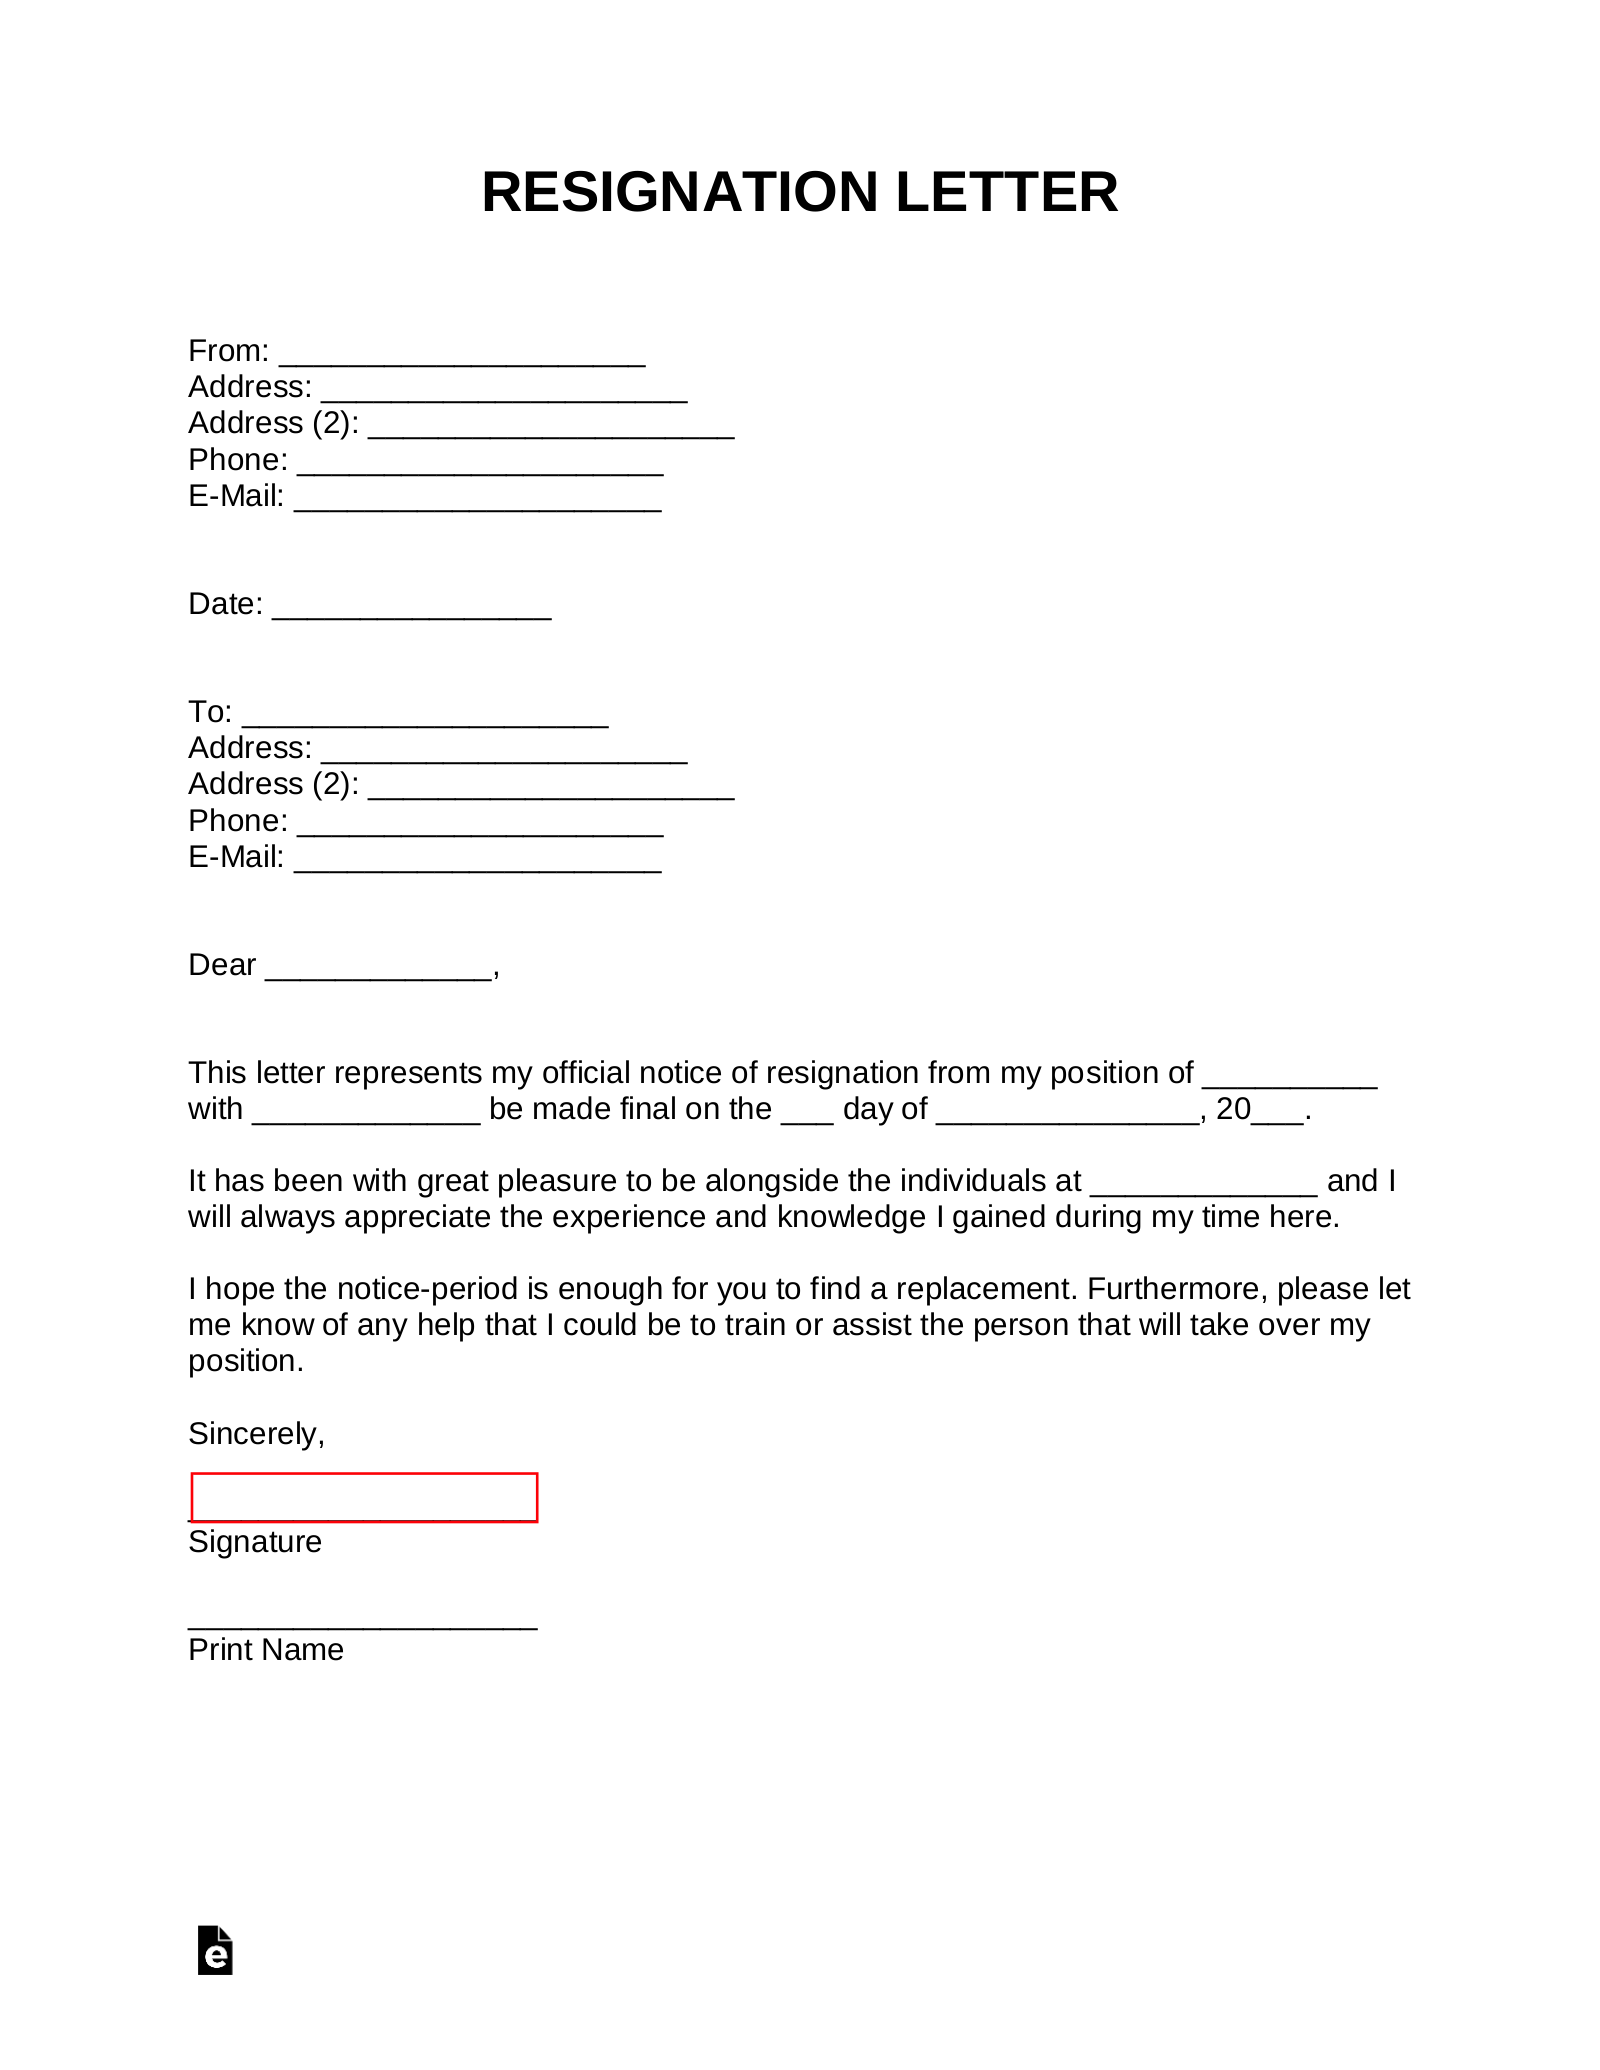 Free Resignation Letters Templates Samples Pdf Word